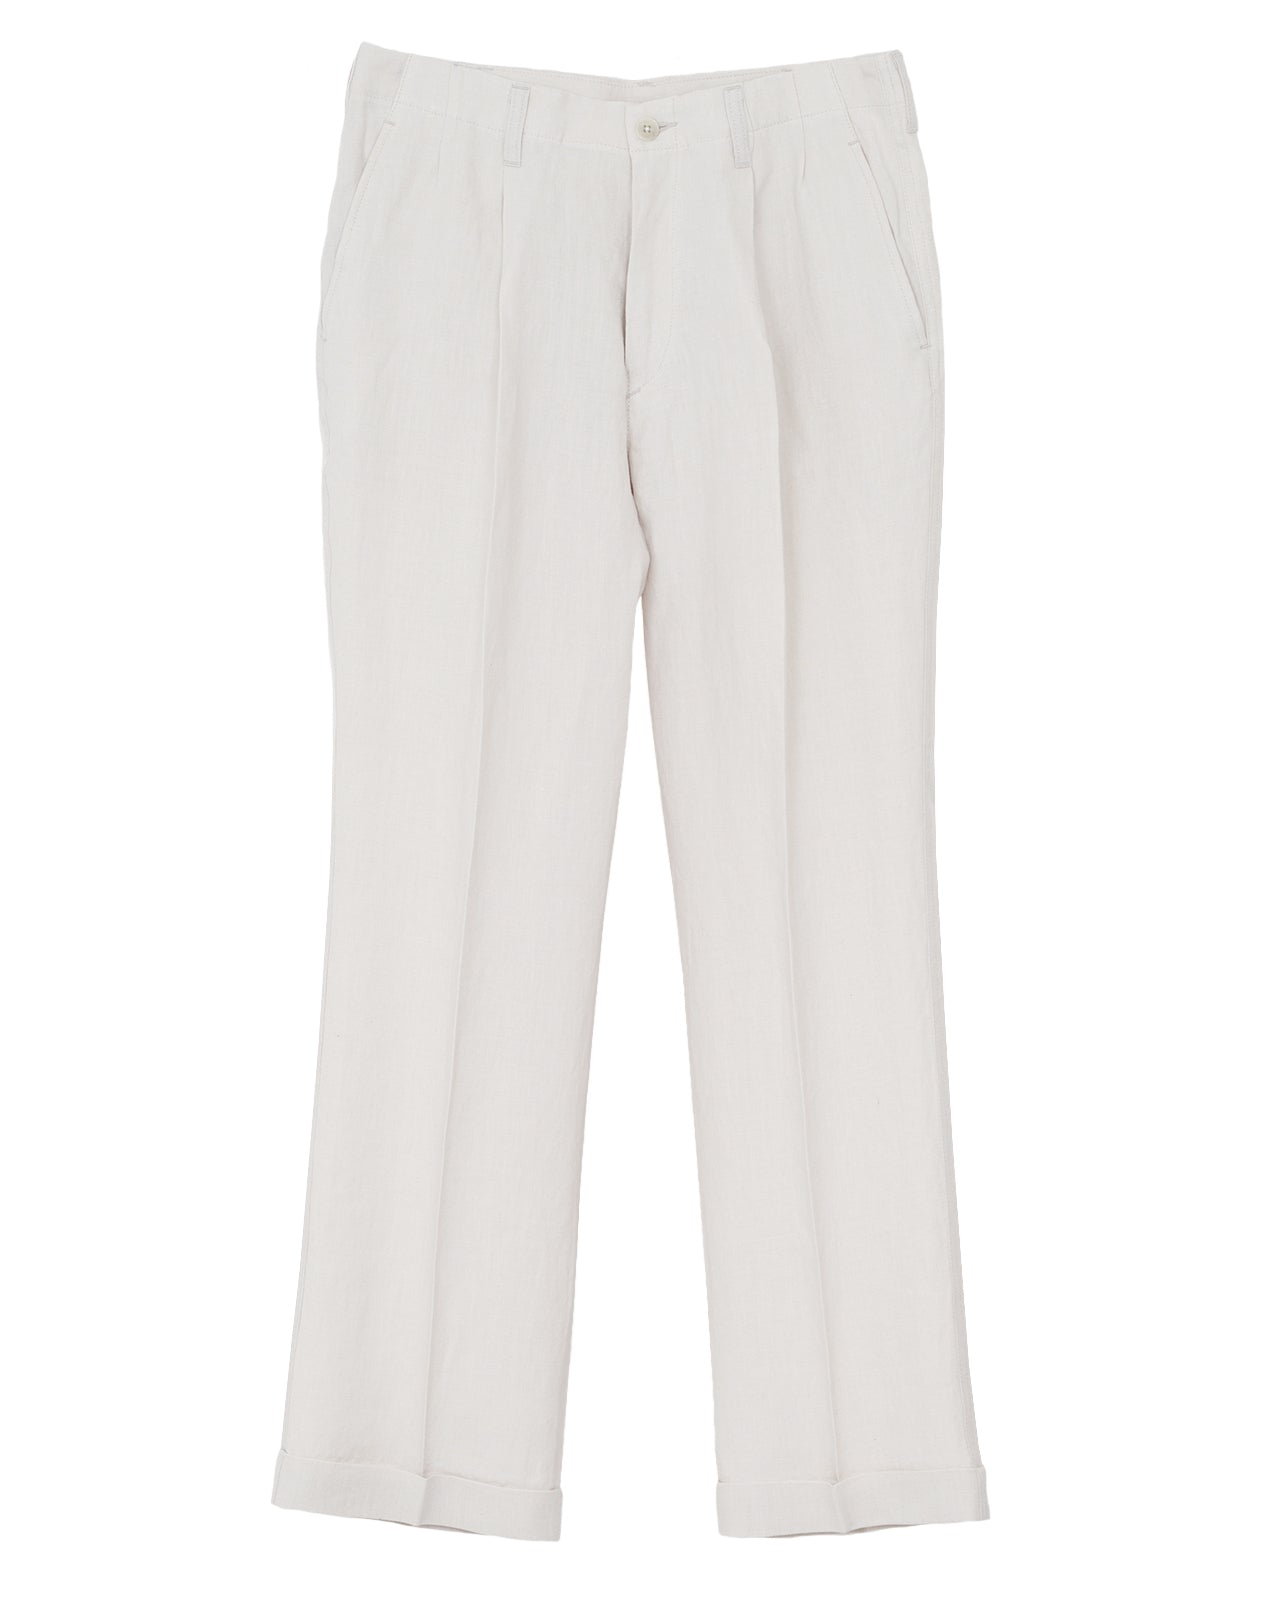 By Glad Hand, Linen Trousers, Ivory